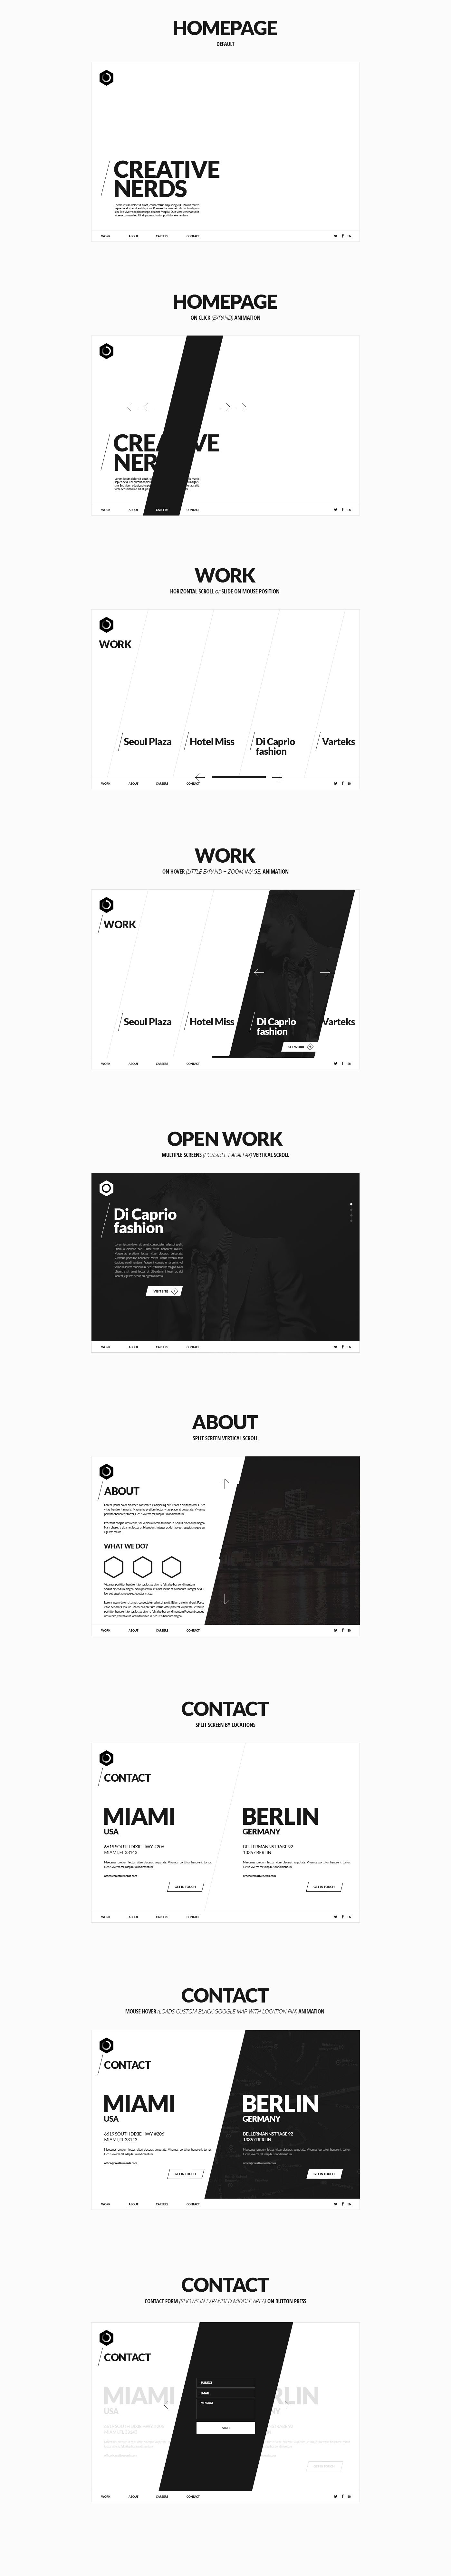 Simple and effective minimalist design and color palette. I love seeing a website designed so simple yet effective.